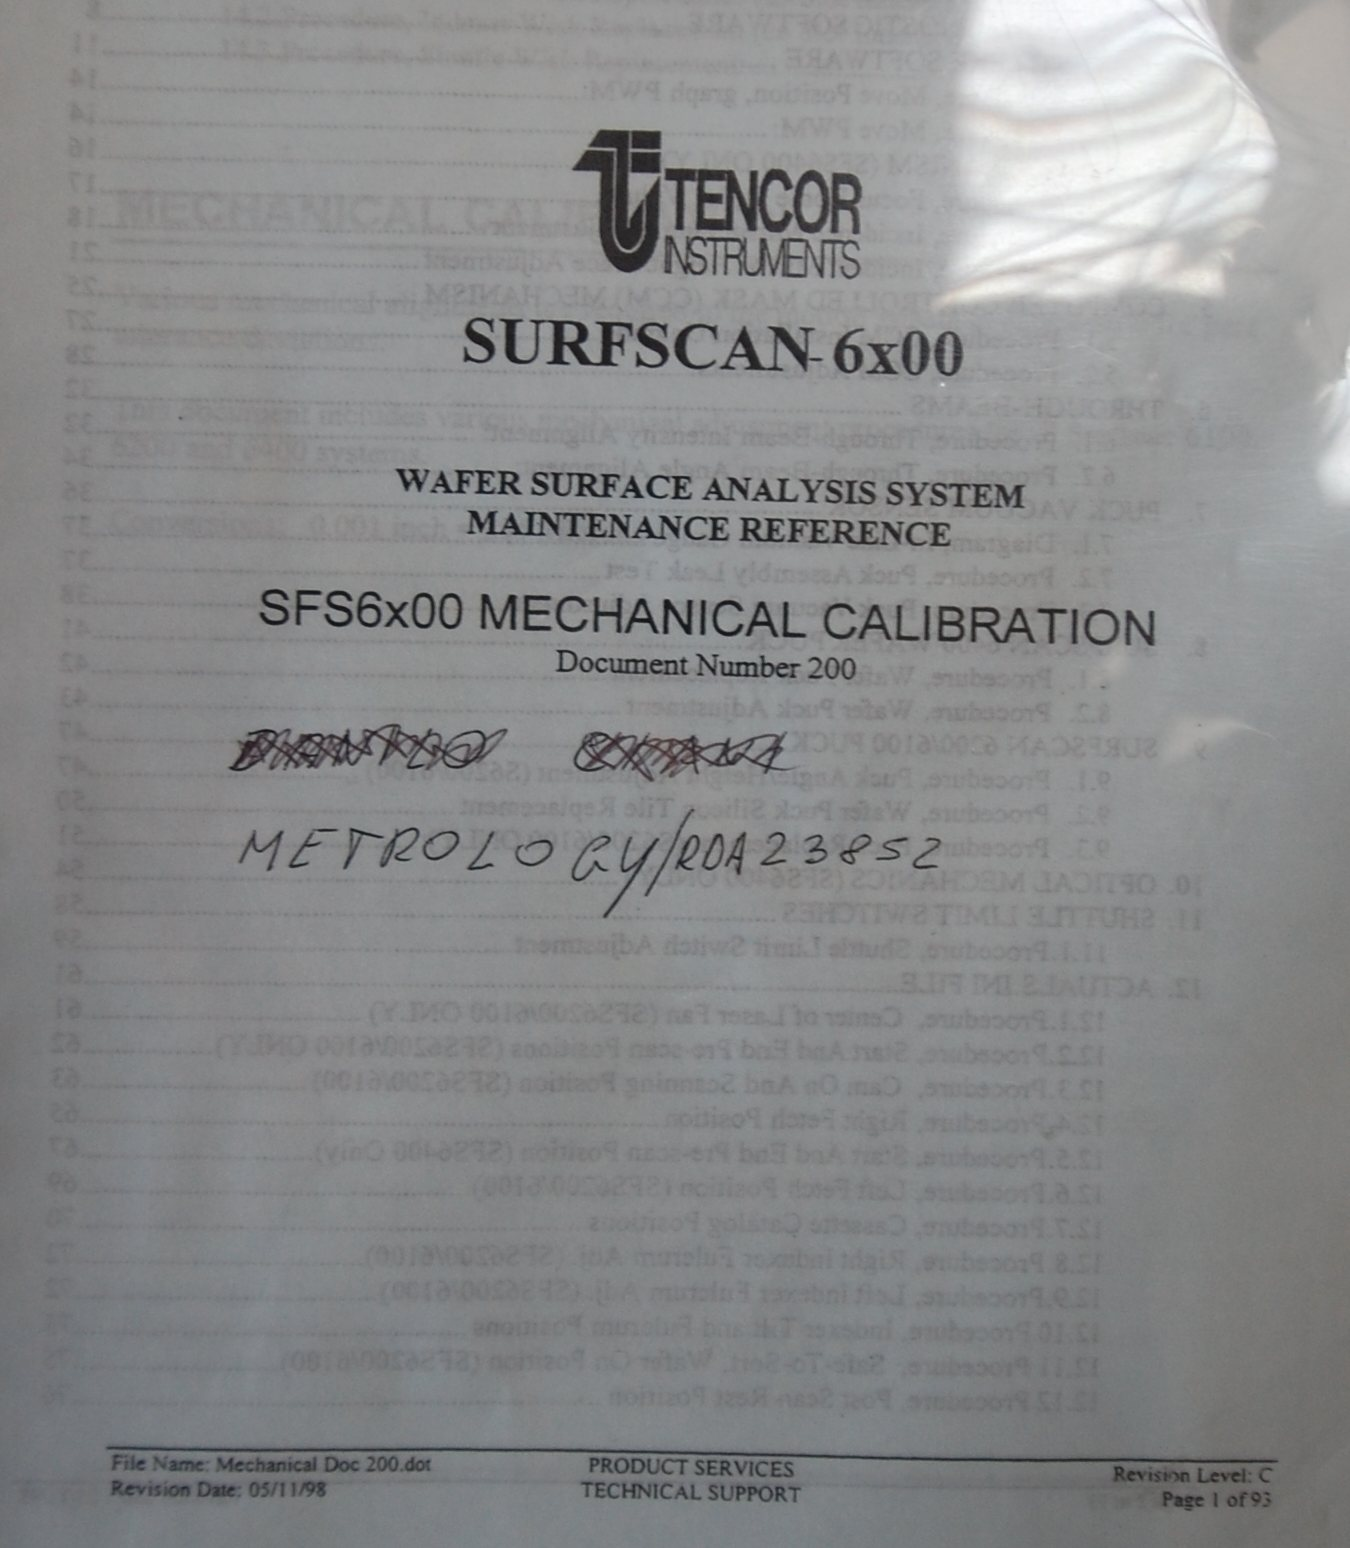 KLA TENCOR SFS6x00 MECHANICAL CALIBRATION Document number 200